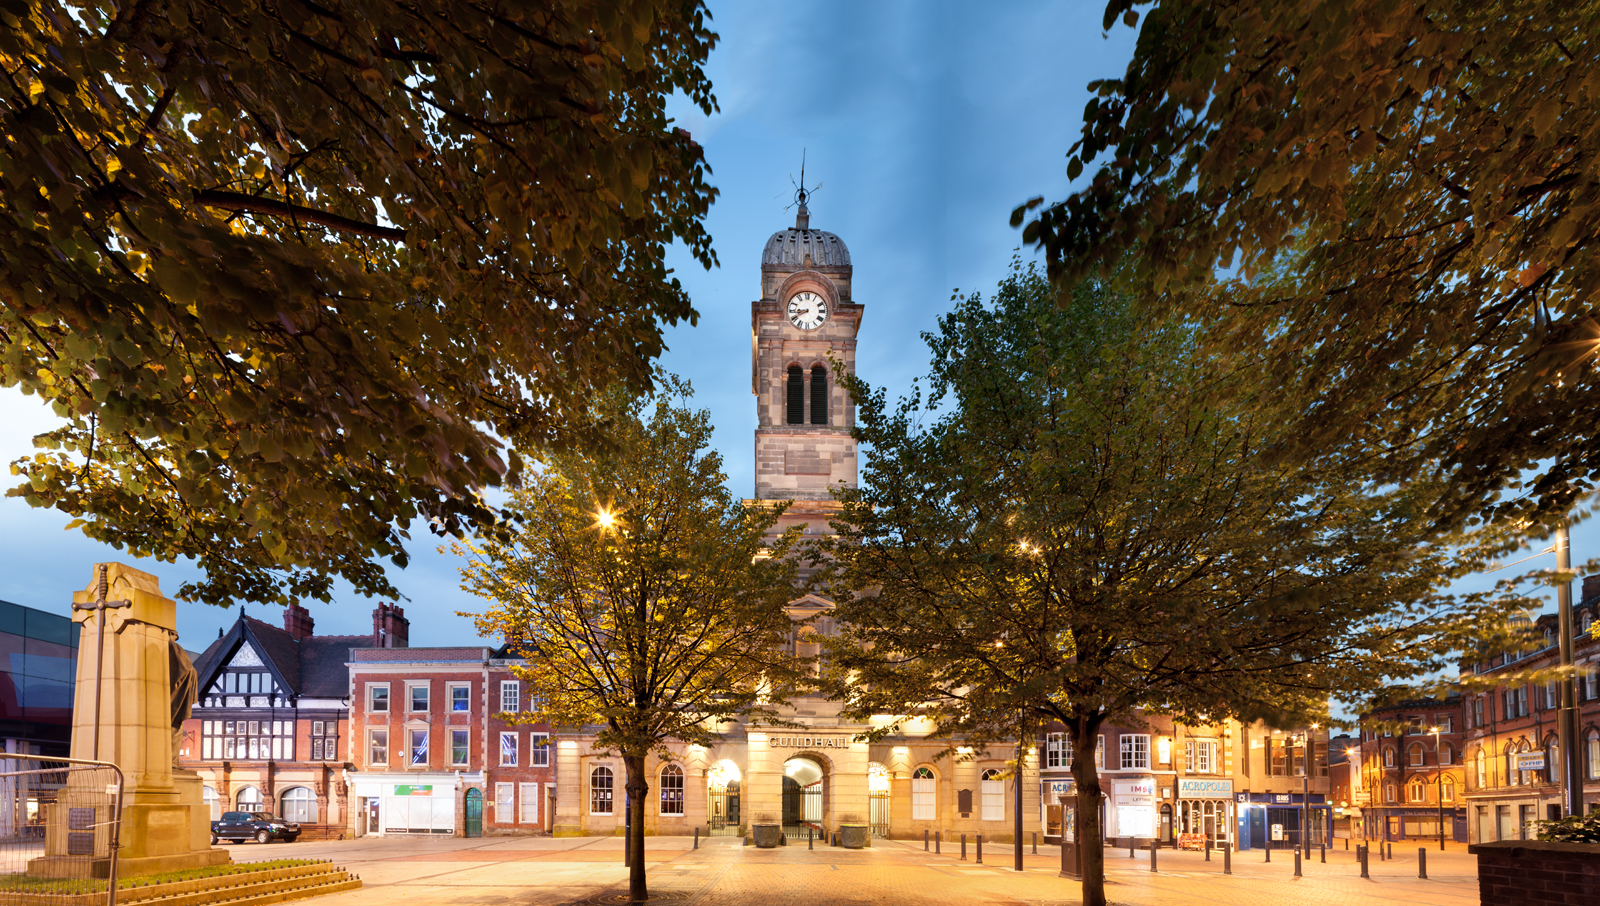 Derby Guildhall